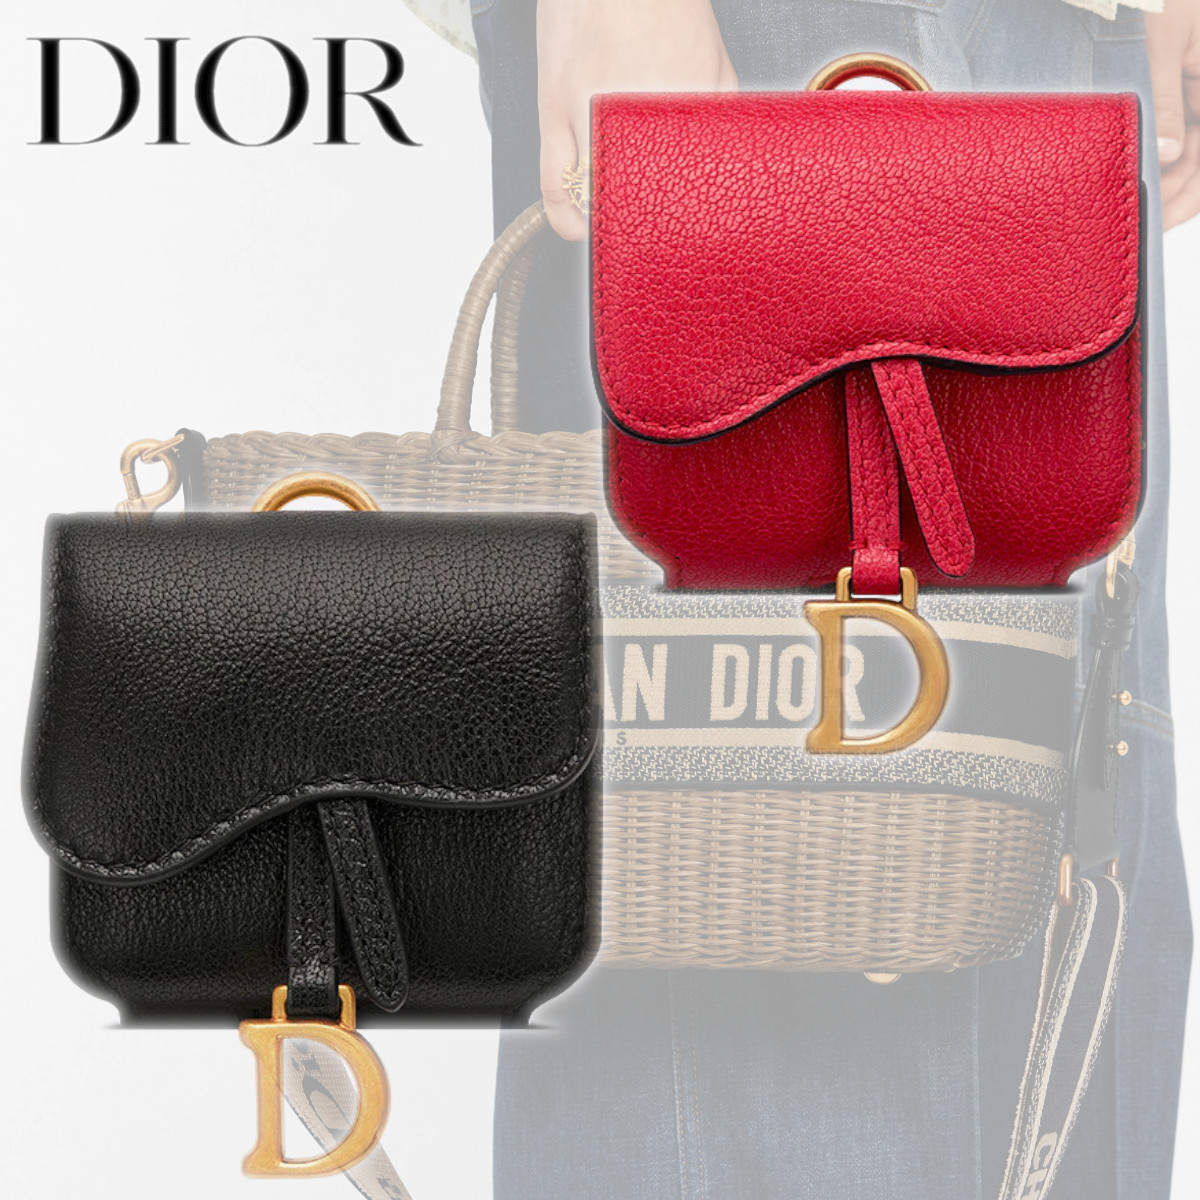 DIOR SADDLE AIRPODS PROケース ゴートスキン 無地 ロゴ 大人気 (Dior/スマホケース・テックアクセサリーその他) S5675CCEH_M14F  S5675CCEH_M900